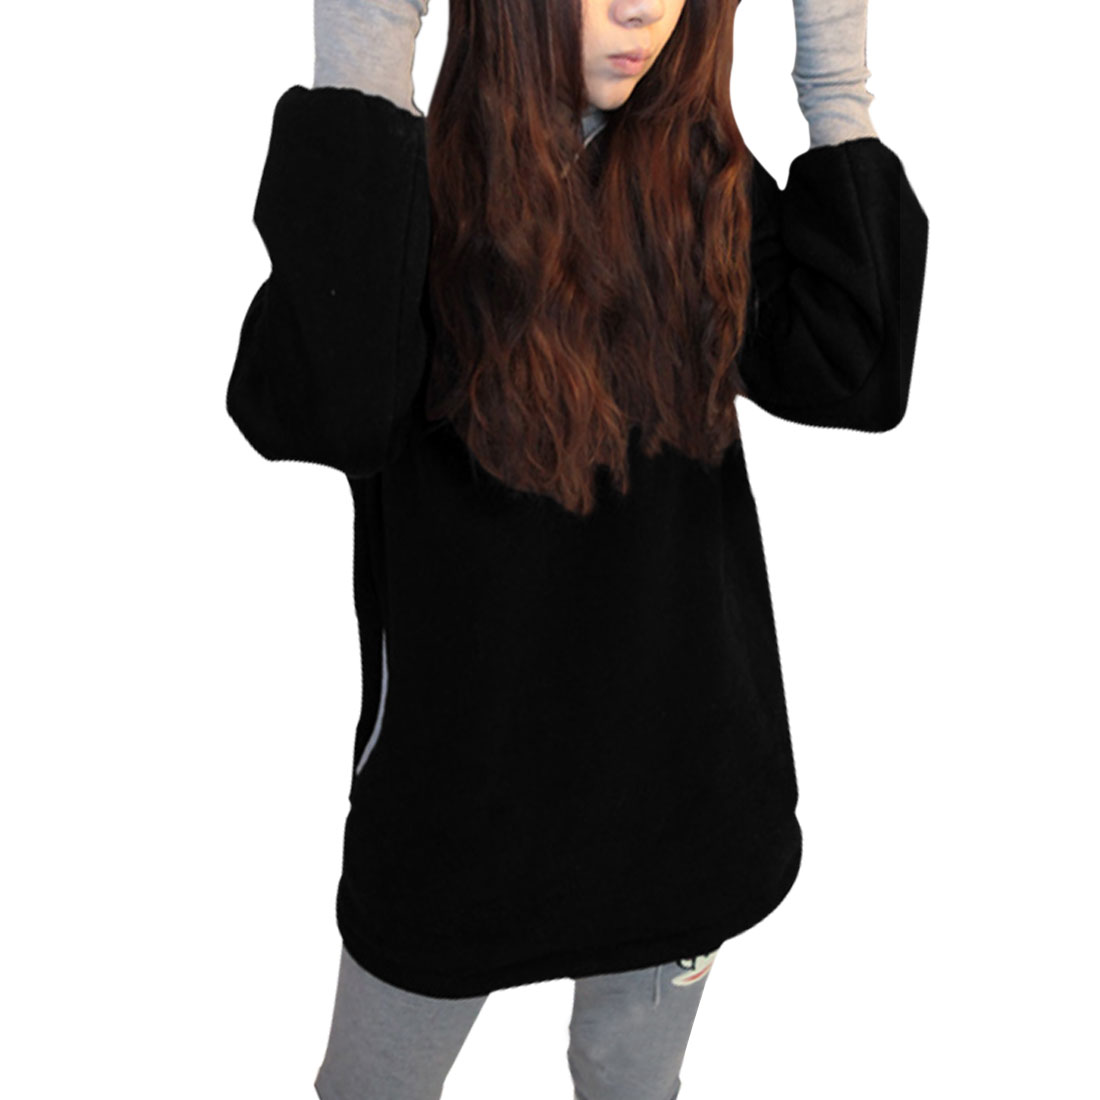 Lady Black Panel Long Sleeve Skinny Cuff Fashion Thick Hoodie Outerwear S